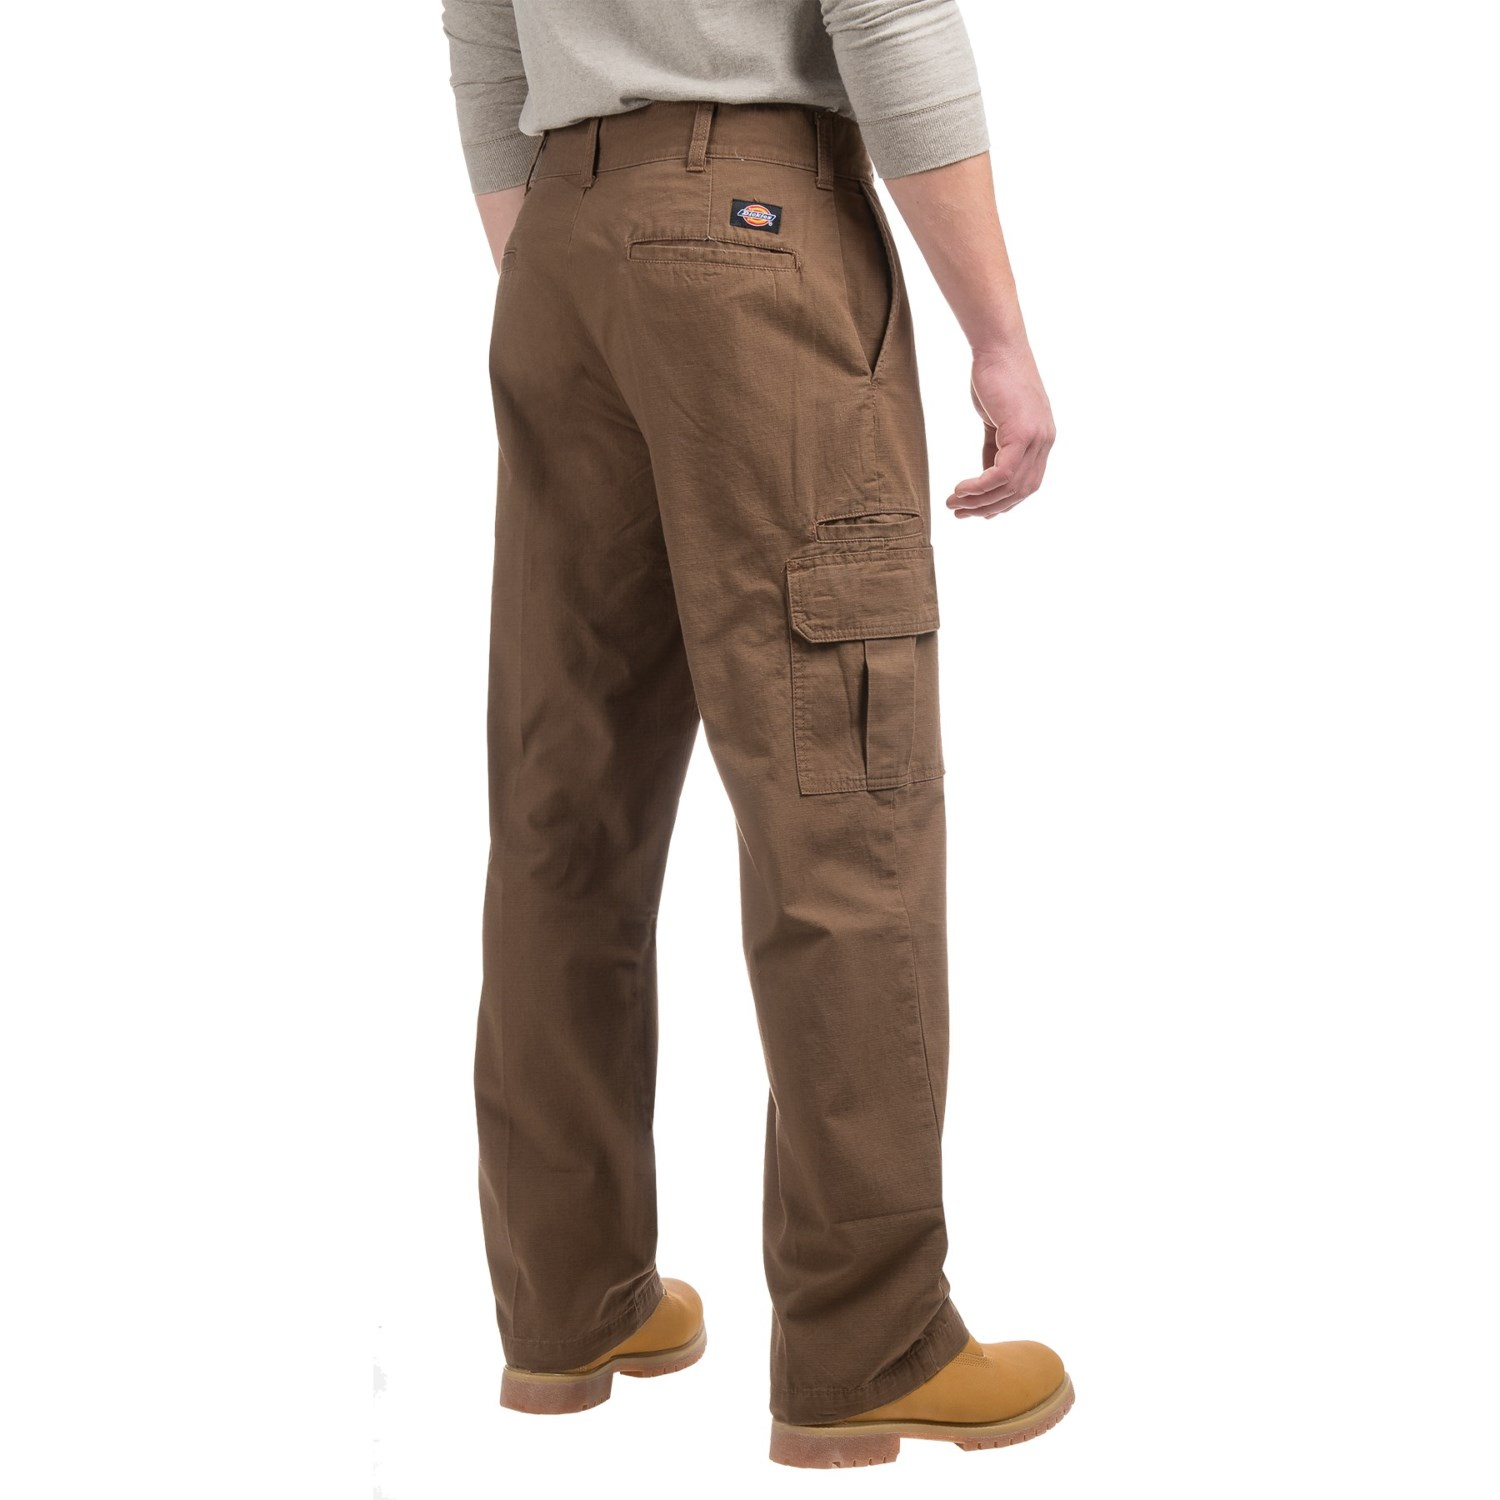 Shop for Hiking Pants at REI - FREE SHIPPING With $50 minimum purchase. Top quality, great selection and expert advice you can trust. % Satisfaction Guarantee. Shop for Hiking Pants at REI - FREE SHIPPING With $50 minimum purchase. Top quality, great selection and expert advice you can trust. % Satisfaction Guarantee Taereen Cargo.